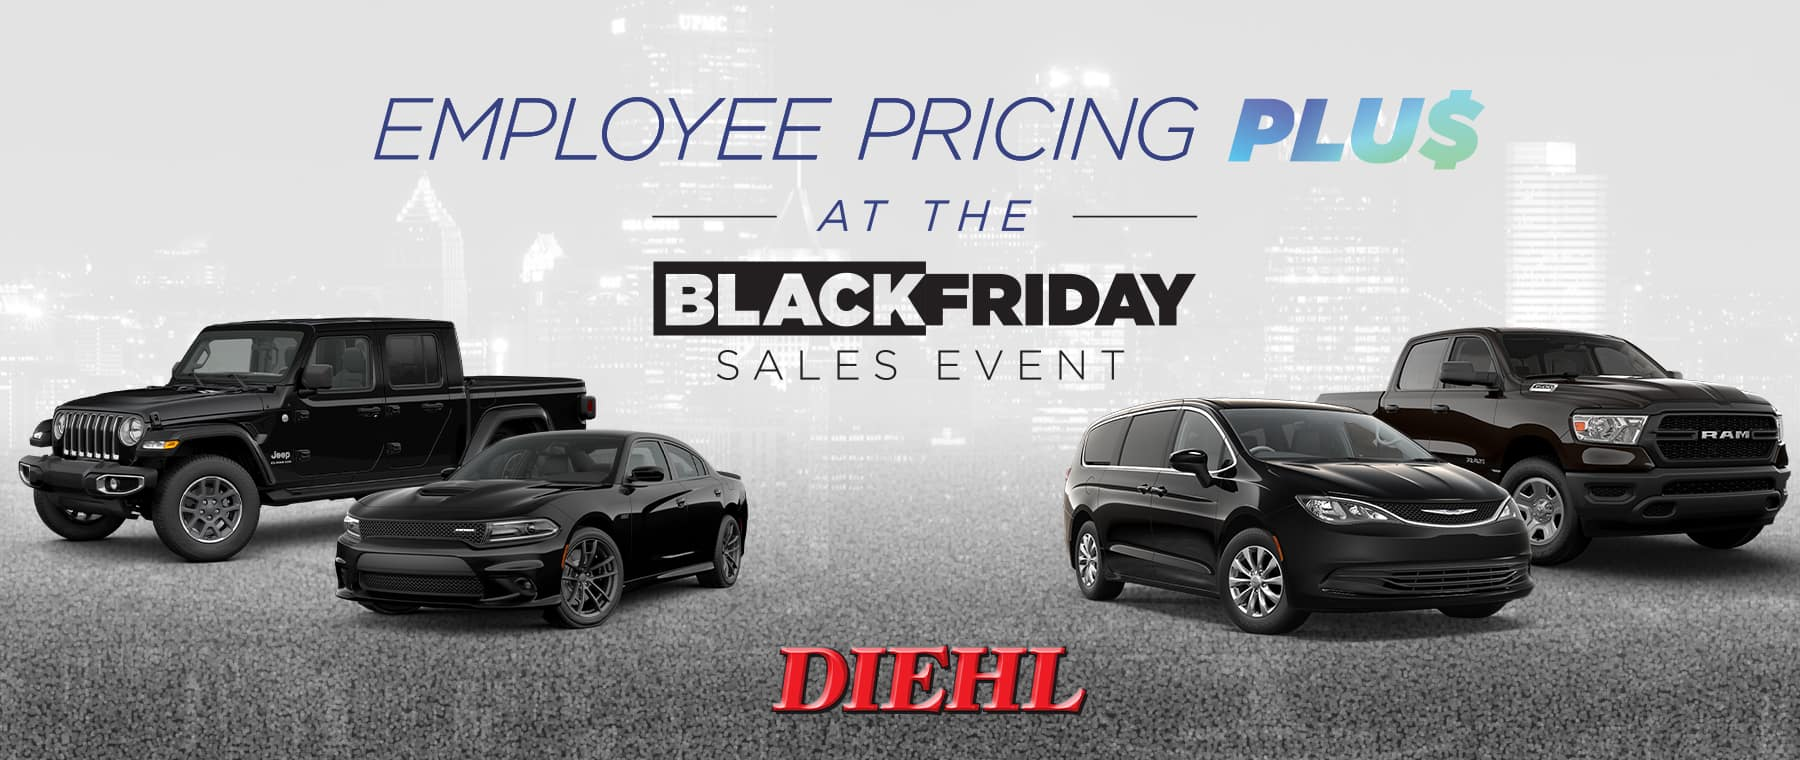 Diehl robinson Chrysler dodge jeep ram employee pricing Black Friday sales event